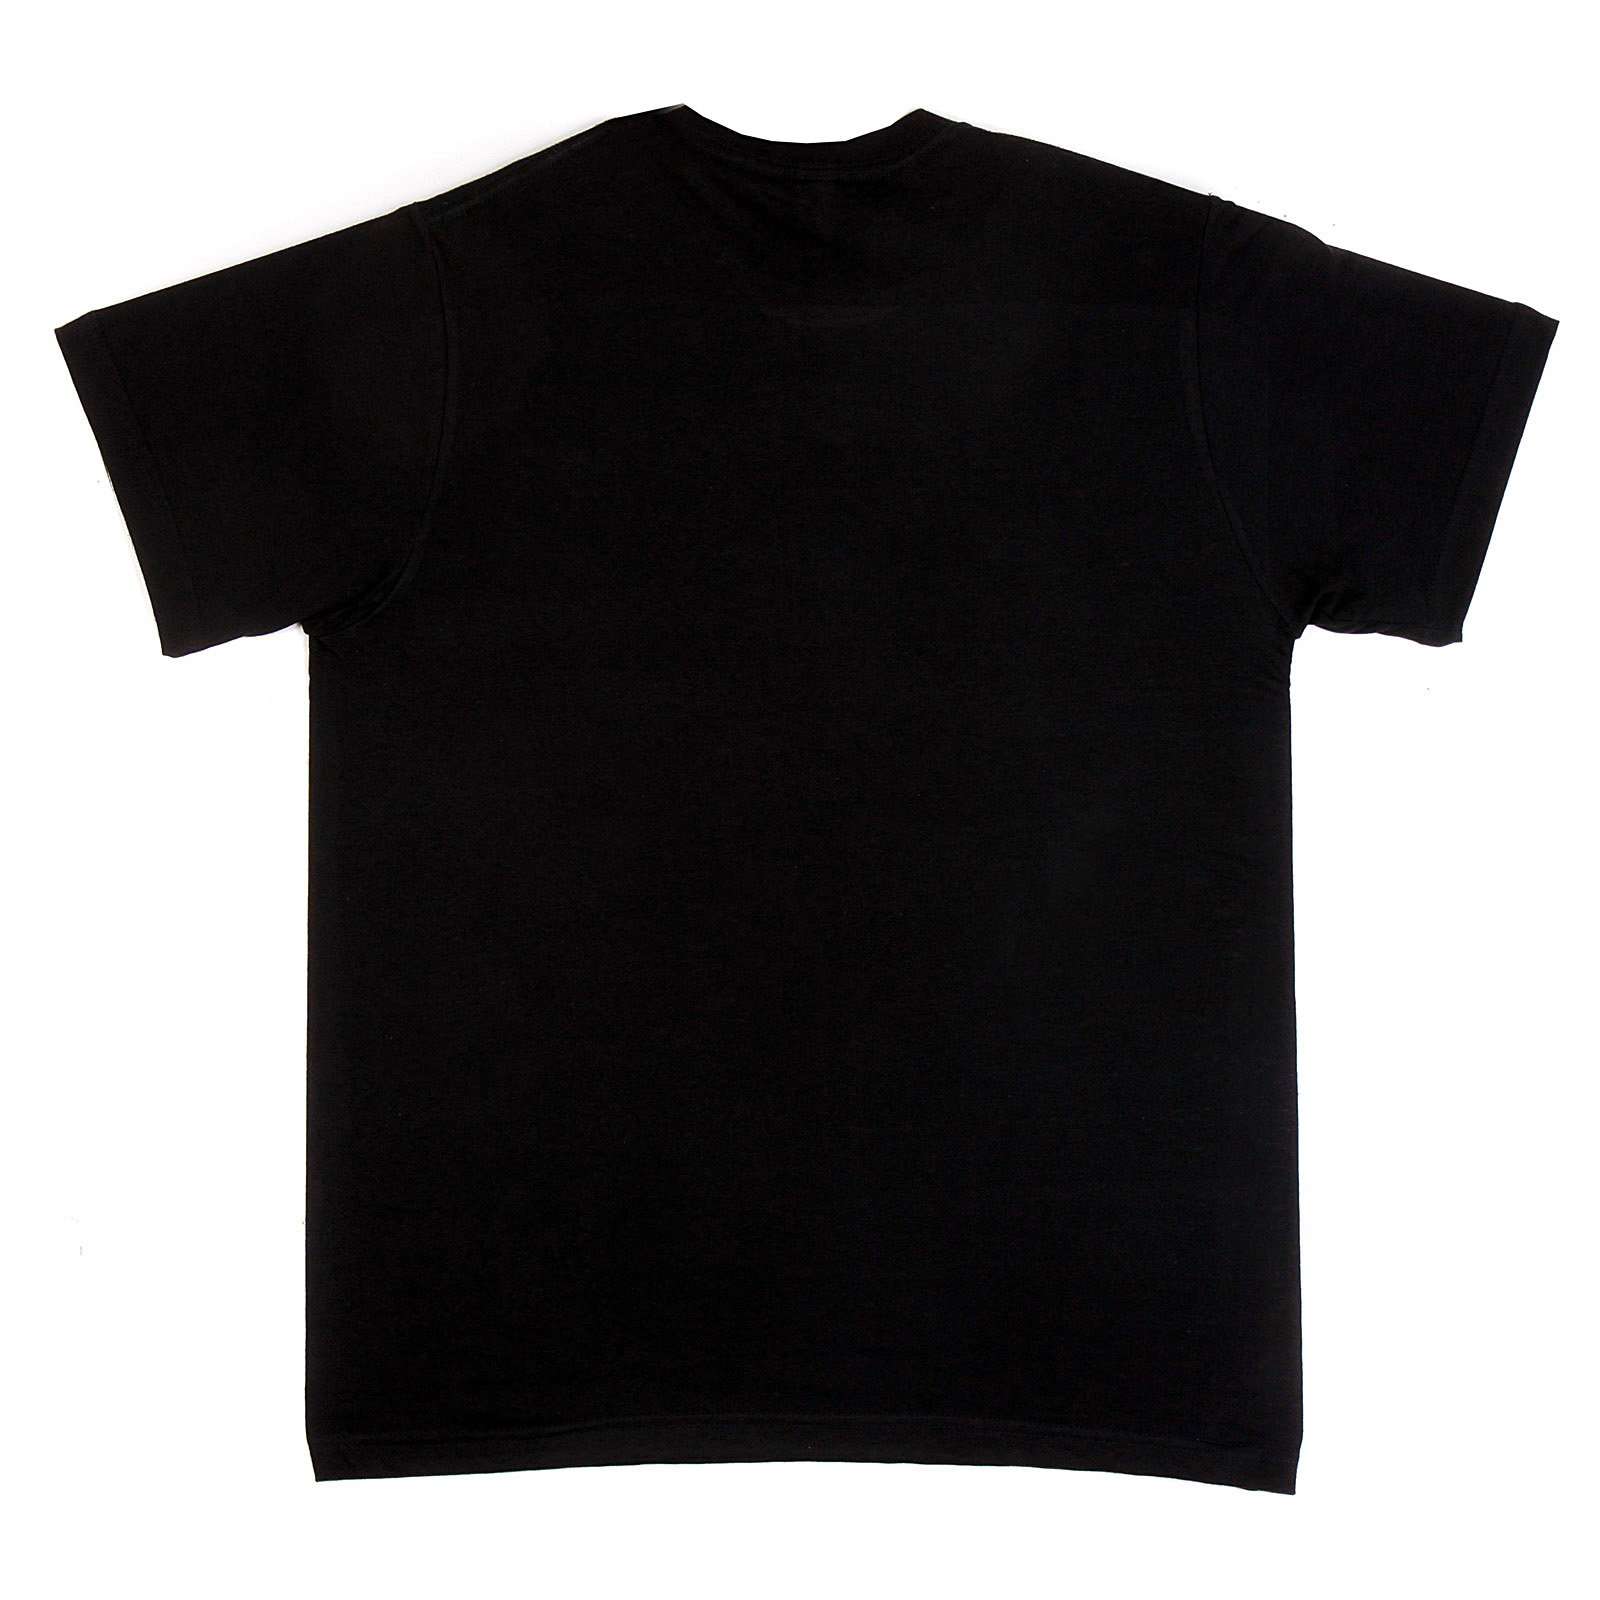 Black T-Shirts are available in several brands and styles. We don't do any printing or design; we simply offer blank, bulk t-shirts in black and many other colors. Most of our wholesale t-shirts come in black.